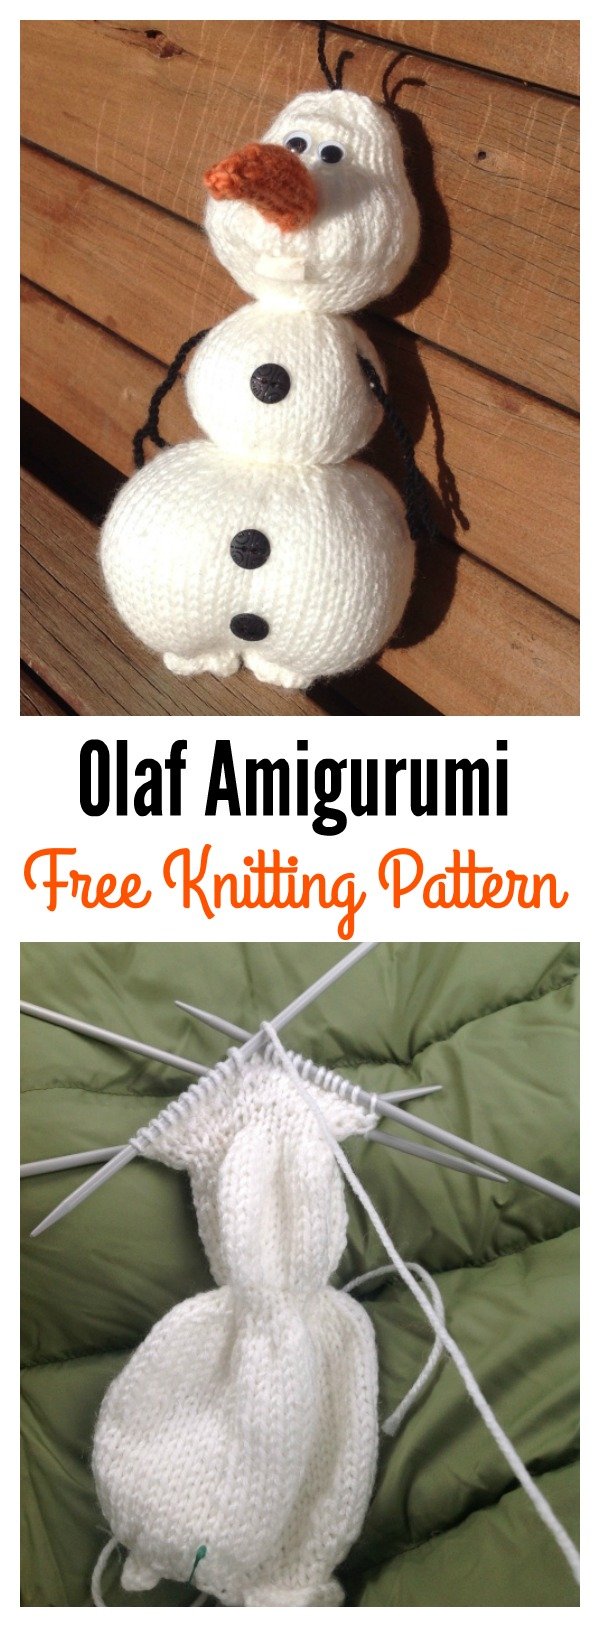 Olaf from Frozen Amigurumi Free Knitting Pattern